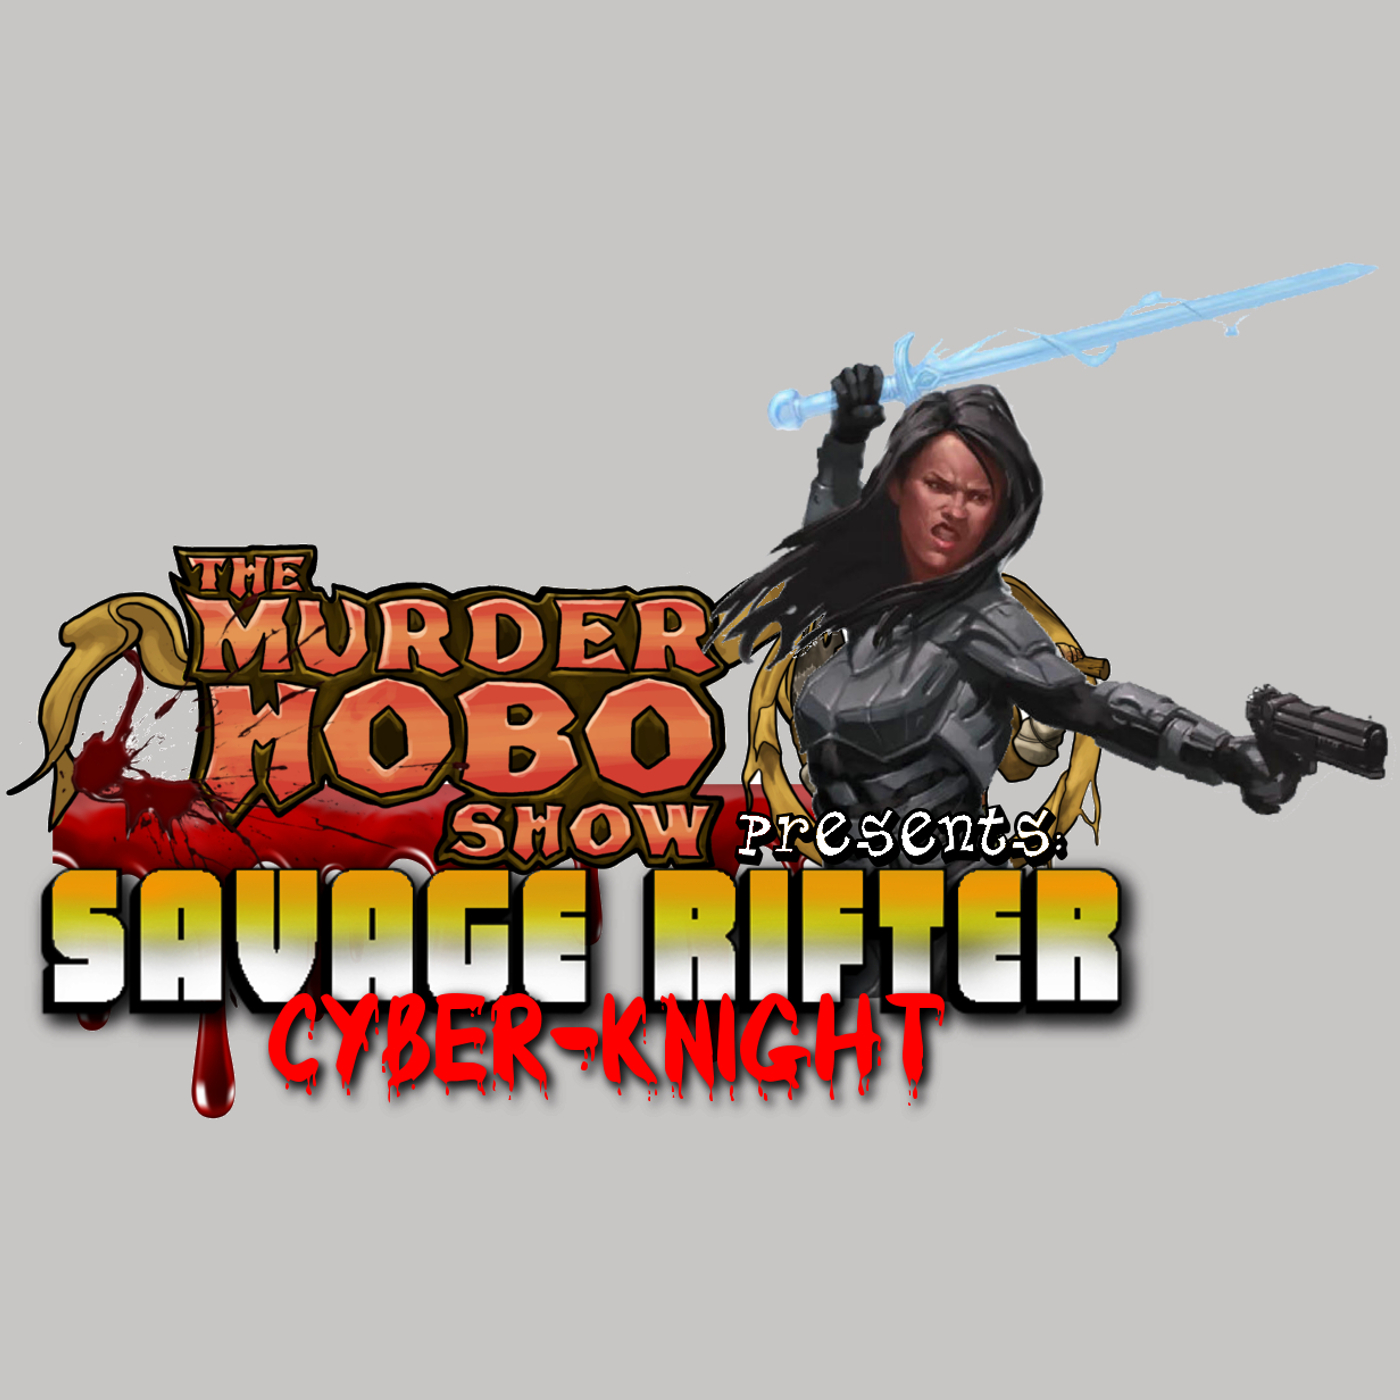 Savage Rifter Ep 4: Cyber-Knight